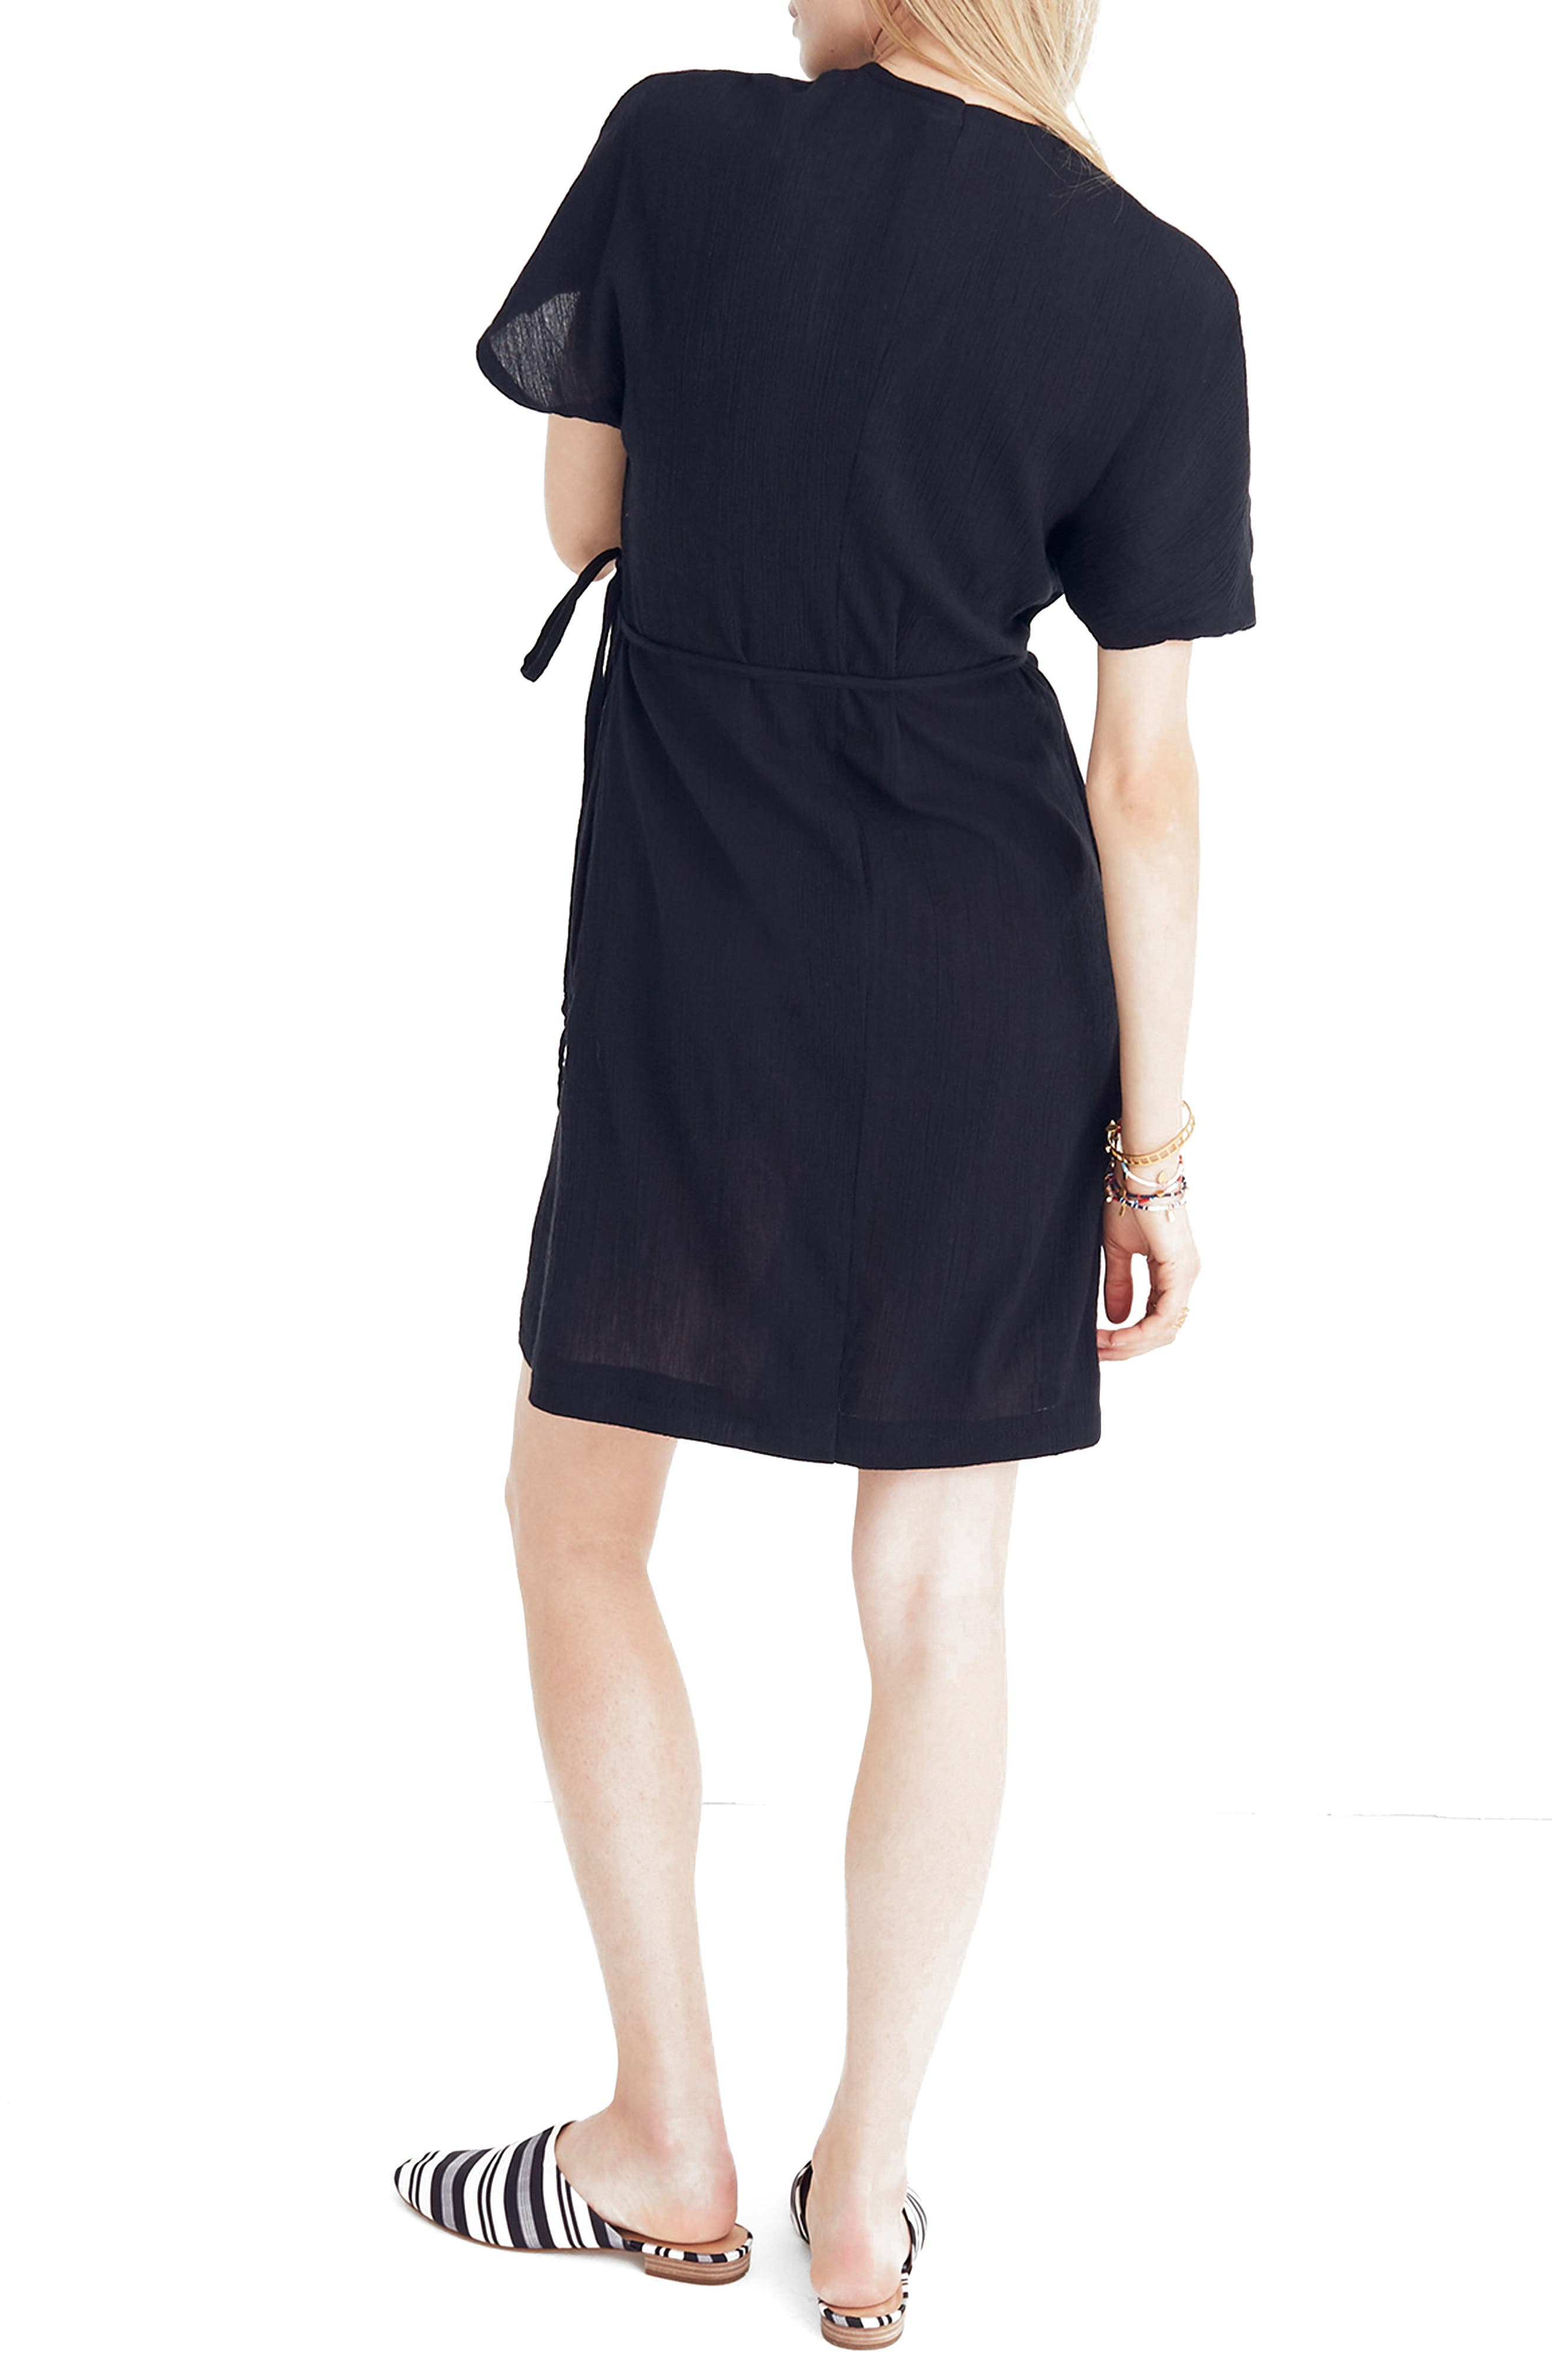 MADEWELL,                             Gauze Wrap Dress,                             Alternate thumbnail 2, color,                             001